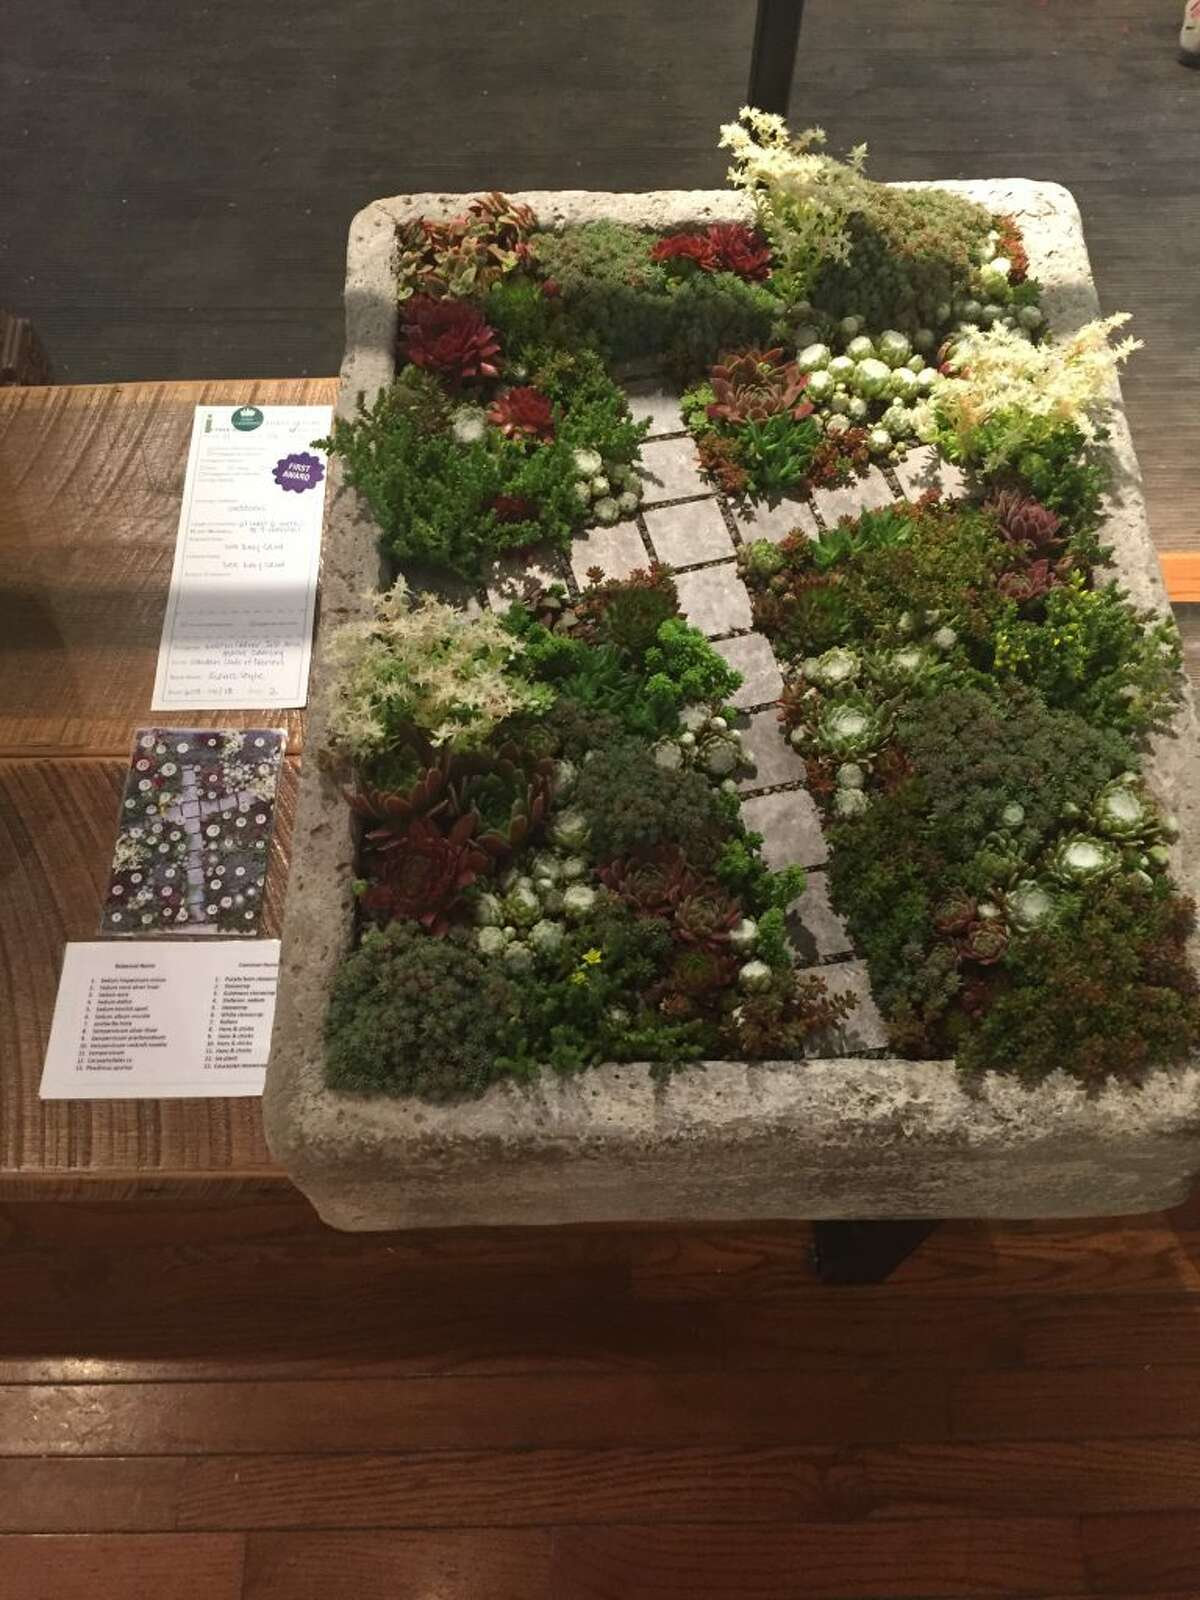 Succulent garden: New Canaan Garden Club's June 2018 Flower Show, Iconicstyle, A Design Legacy. Winner Horticulture Class 11 Stone Trough, designed and planted by Maeve Zamsky, Kristin Collier, and Iris Mix - all of The Garden Club of Darien.